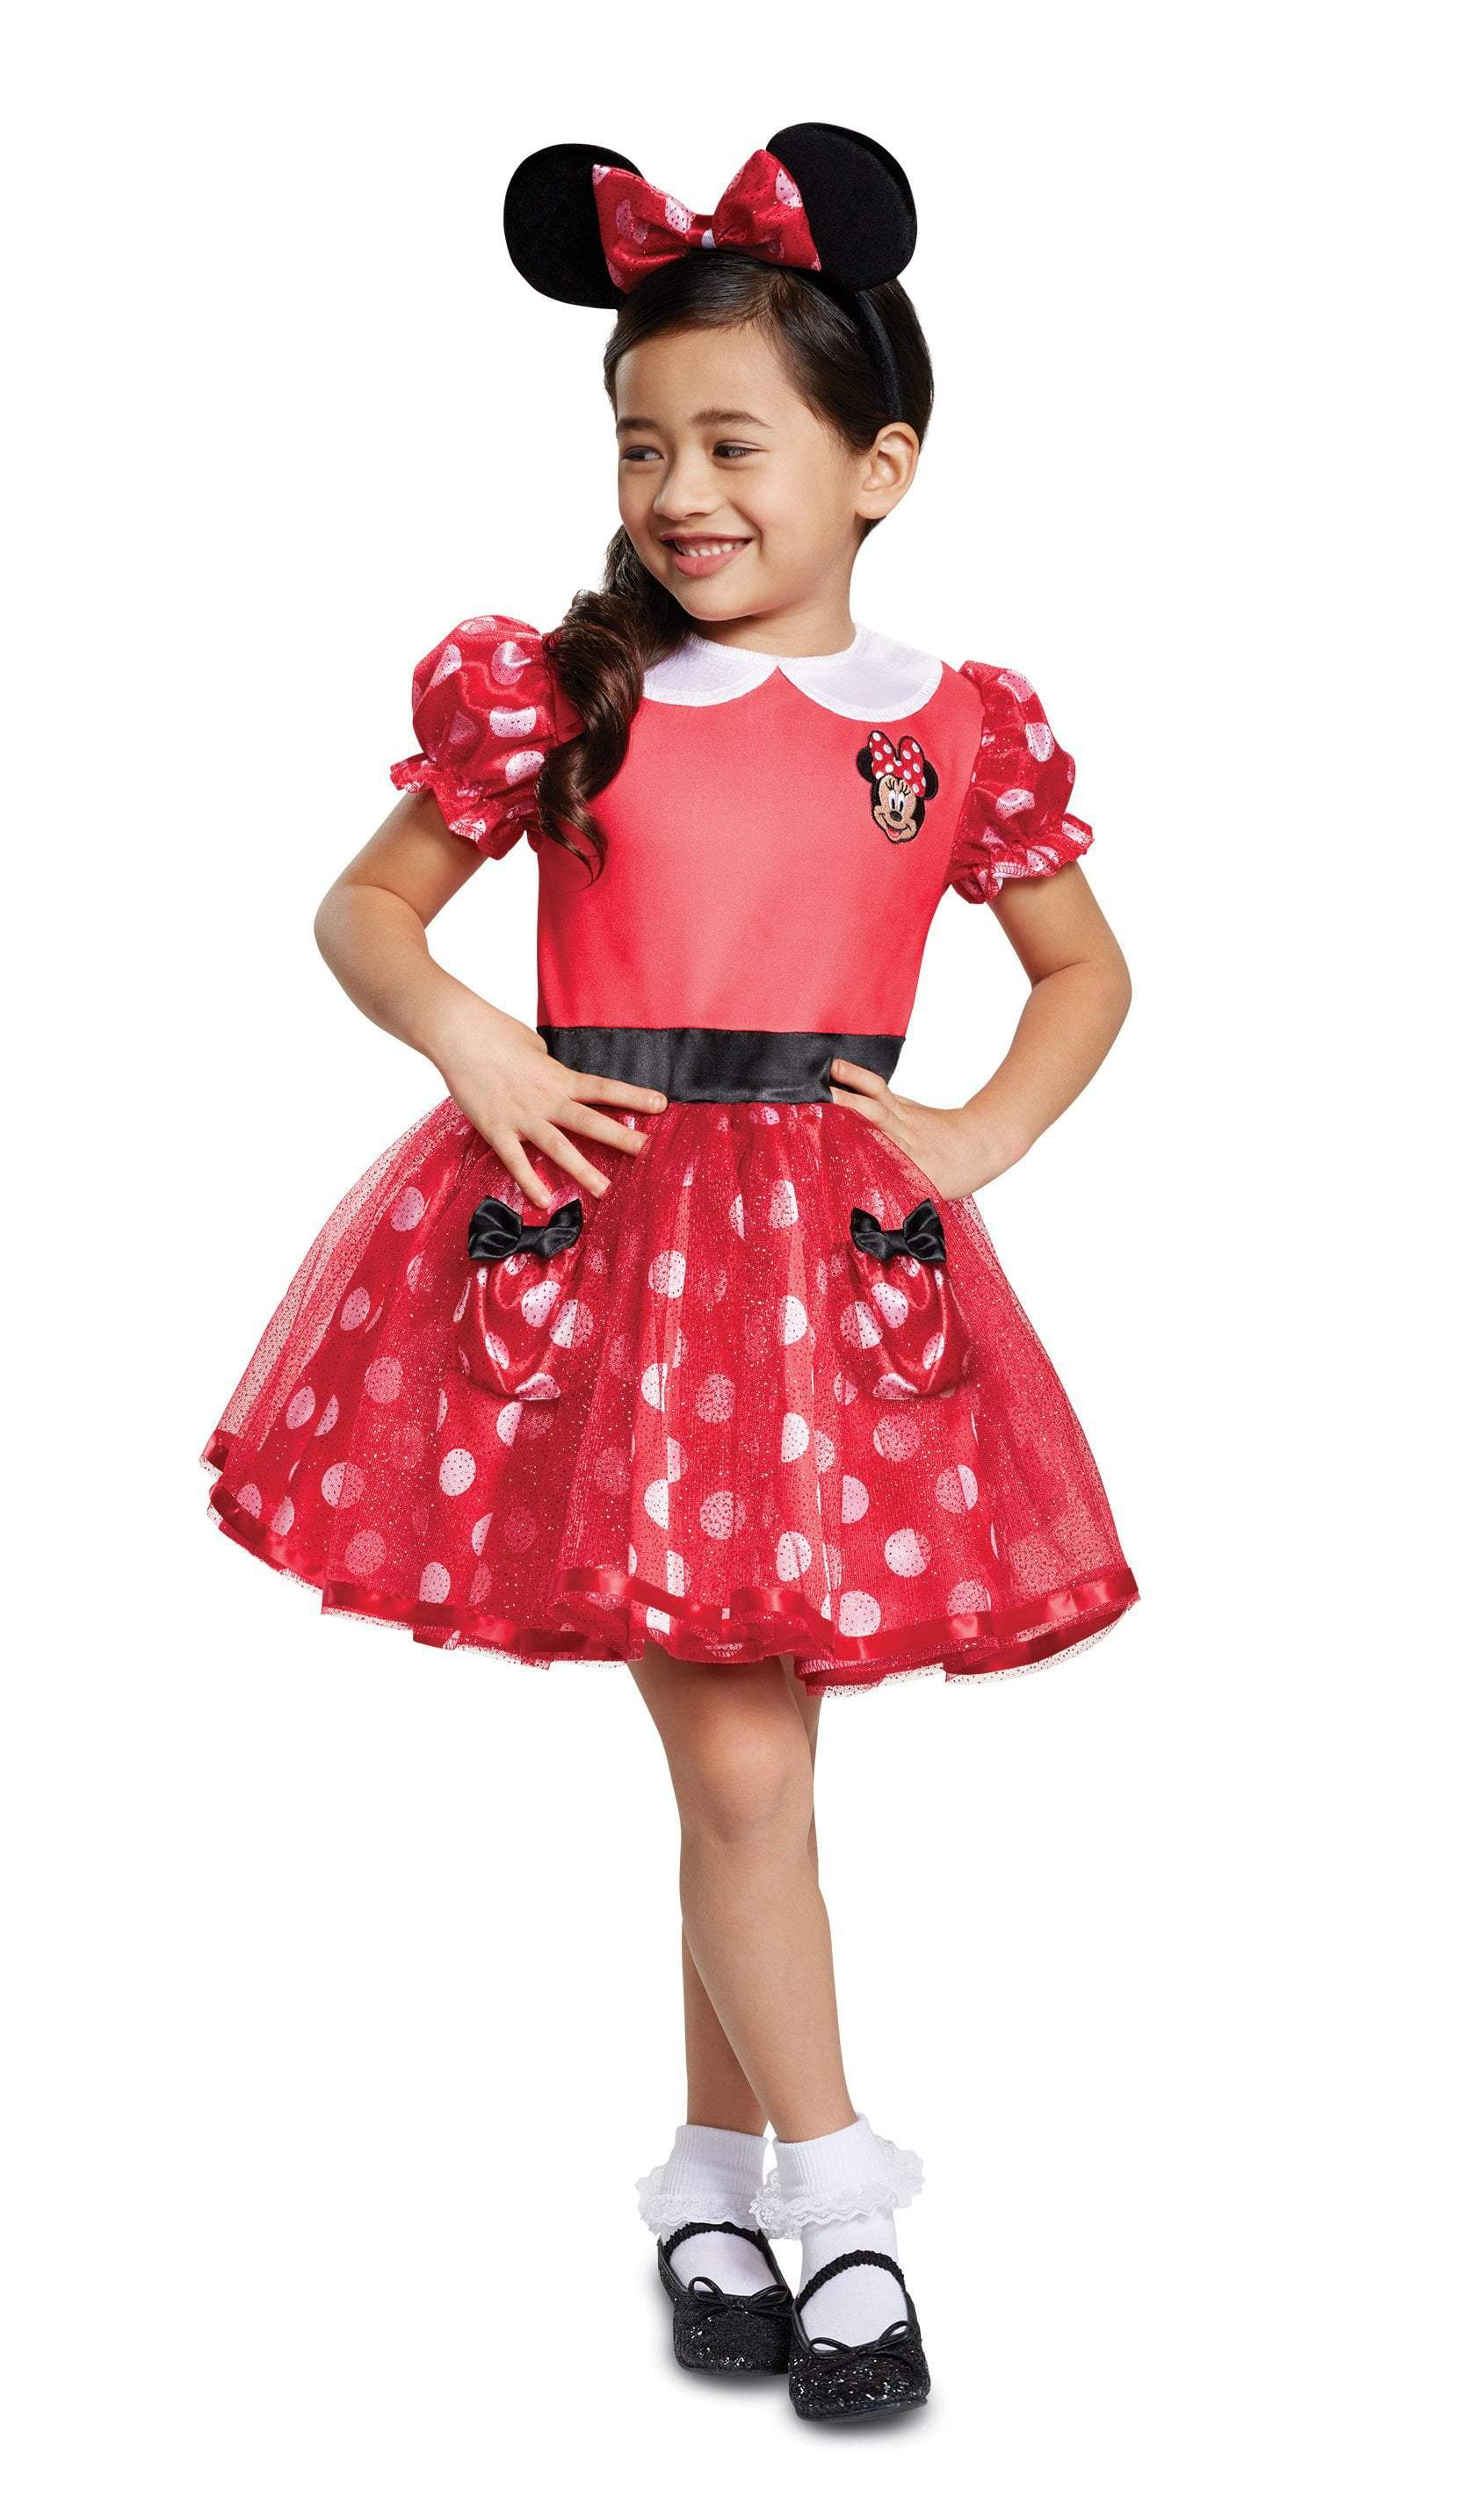 Disguise Costumes MEDIUM - 3T-4T Toddler Girls Minnie Mouse Costume